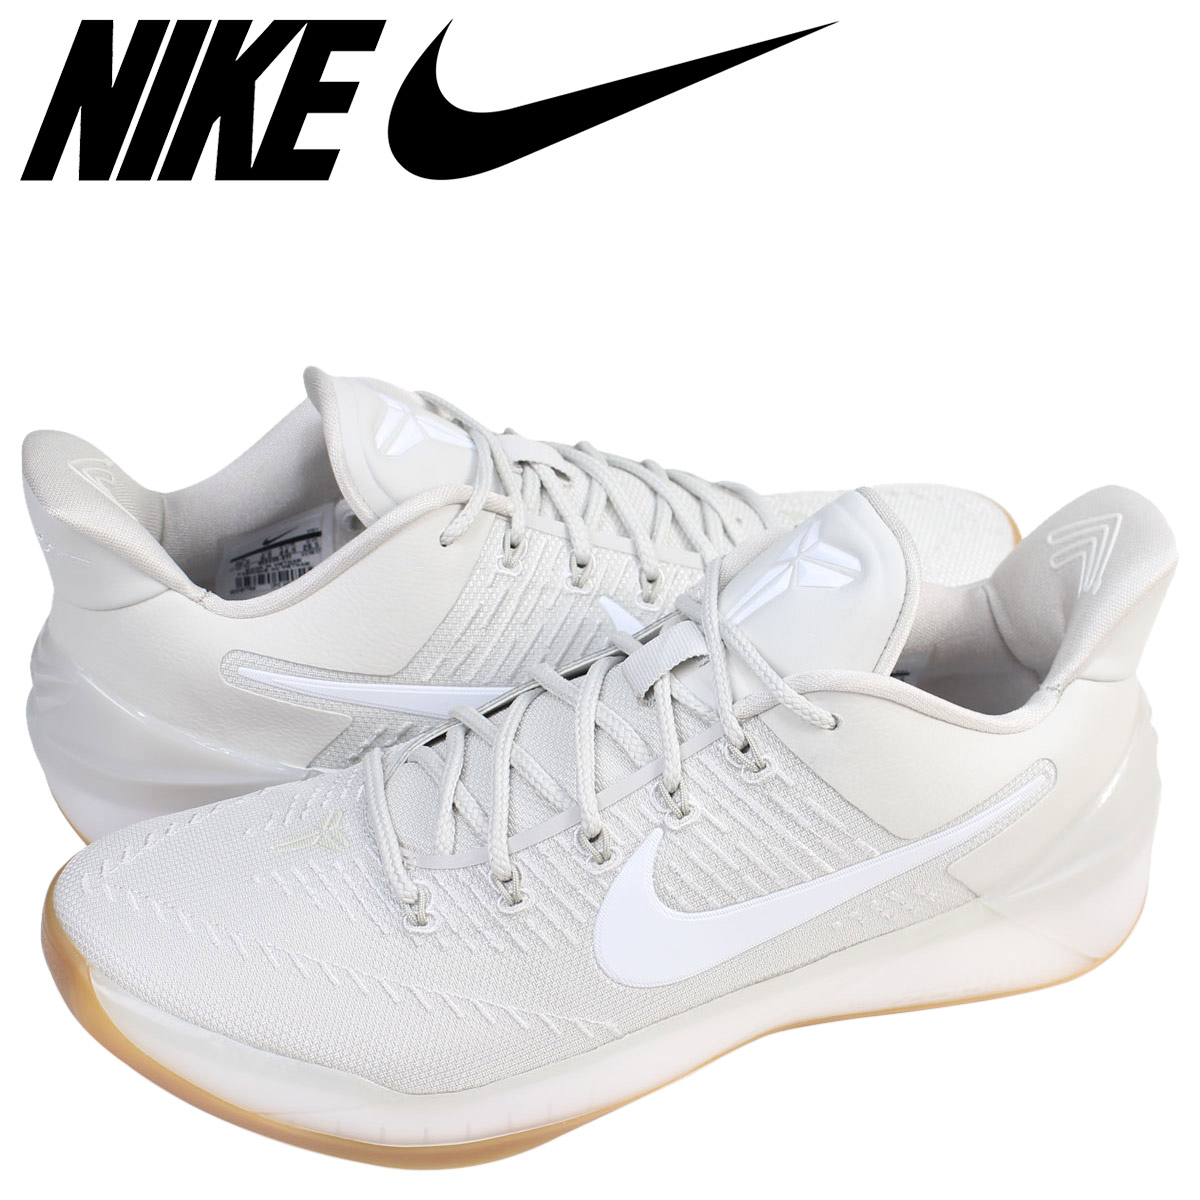 uk availability 1d844 1d4fb NIKE Nike Corby sneakers KOBE A.D. SUMMER PACK men 852,425-011 shoes white  ...